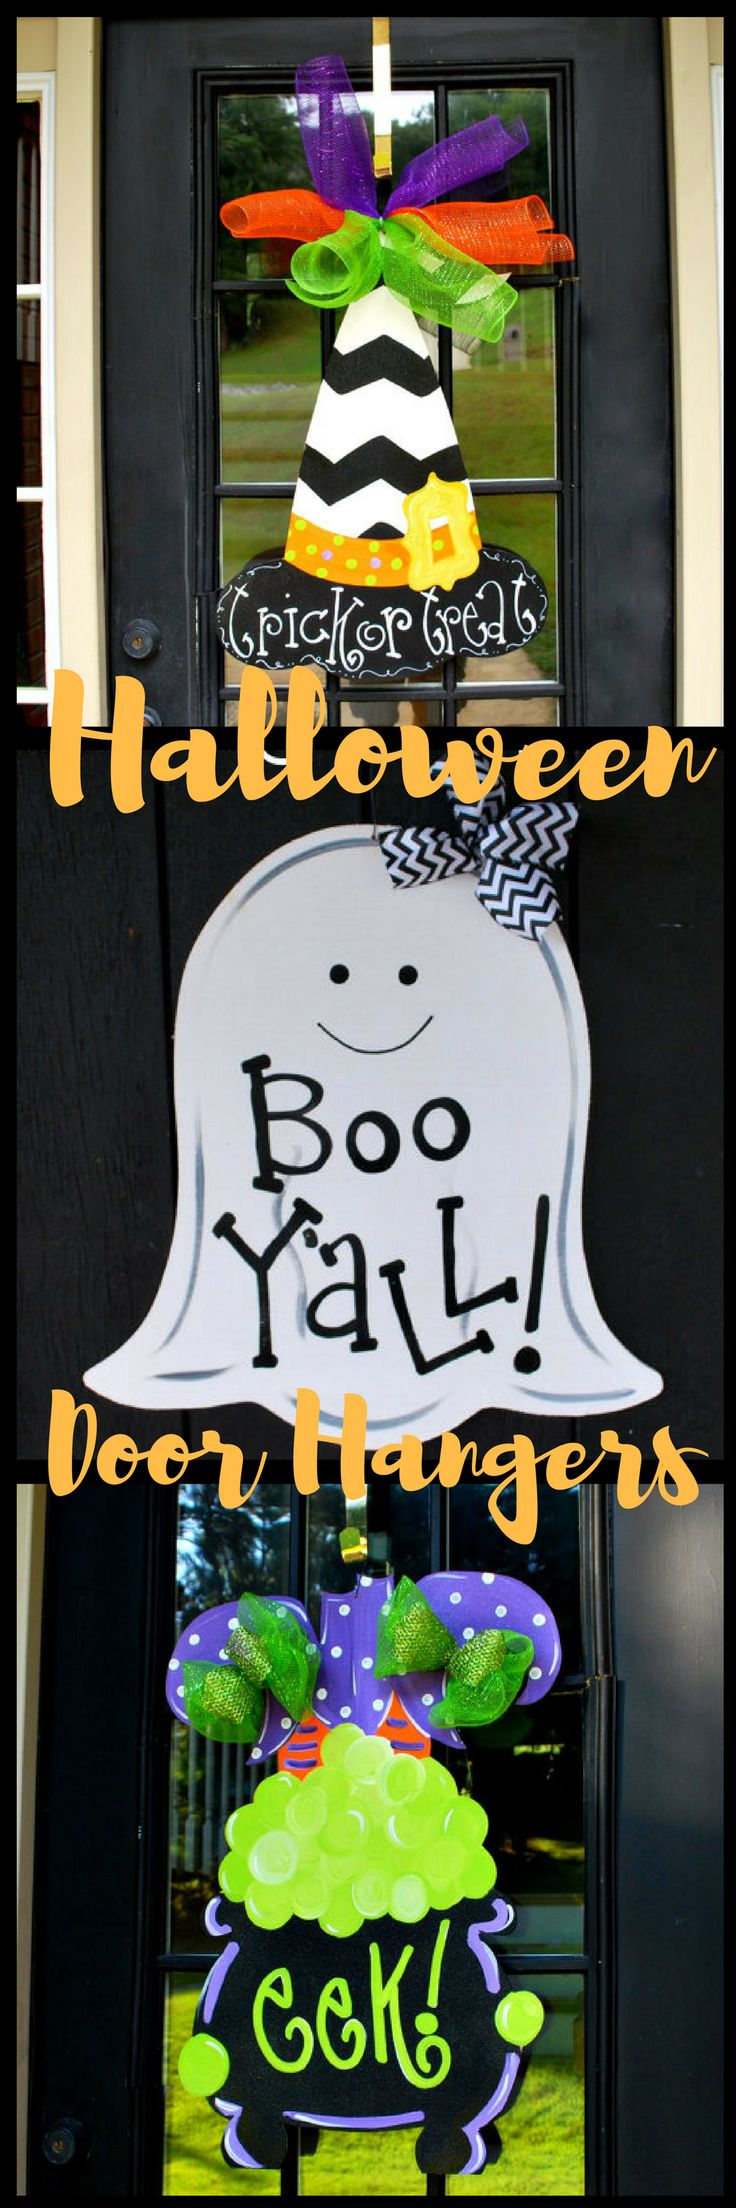 Halloween Witch Wreath | Halloween Door Hanger | Halloween Wreath | Fall Wreath | Witch Decoration | Front Door Halloween | Halloween Party #boo #halloweenwreath #doorhanger #witcheshat #witchesshoes #ghost #shopsmallbusiness #looleighscharm #promotion #etsyshop